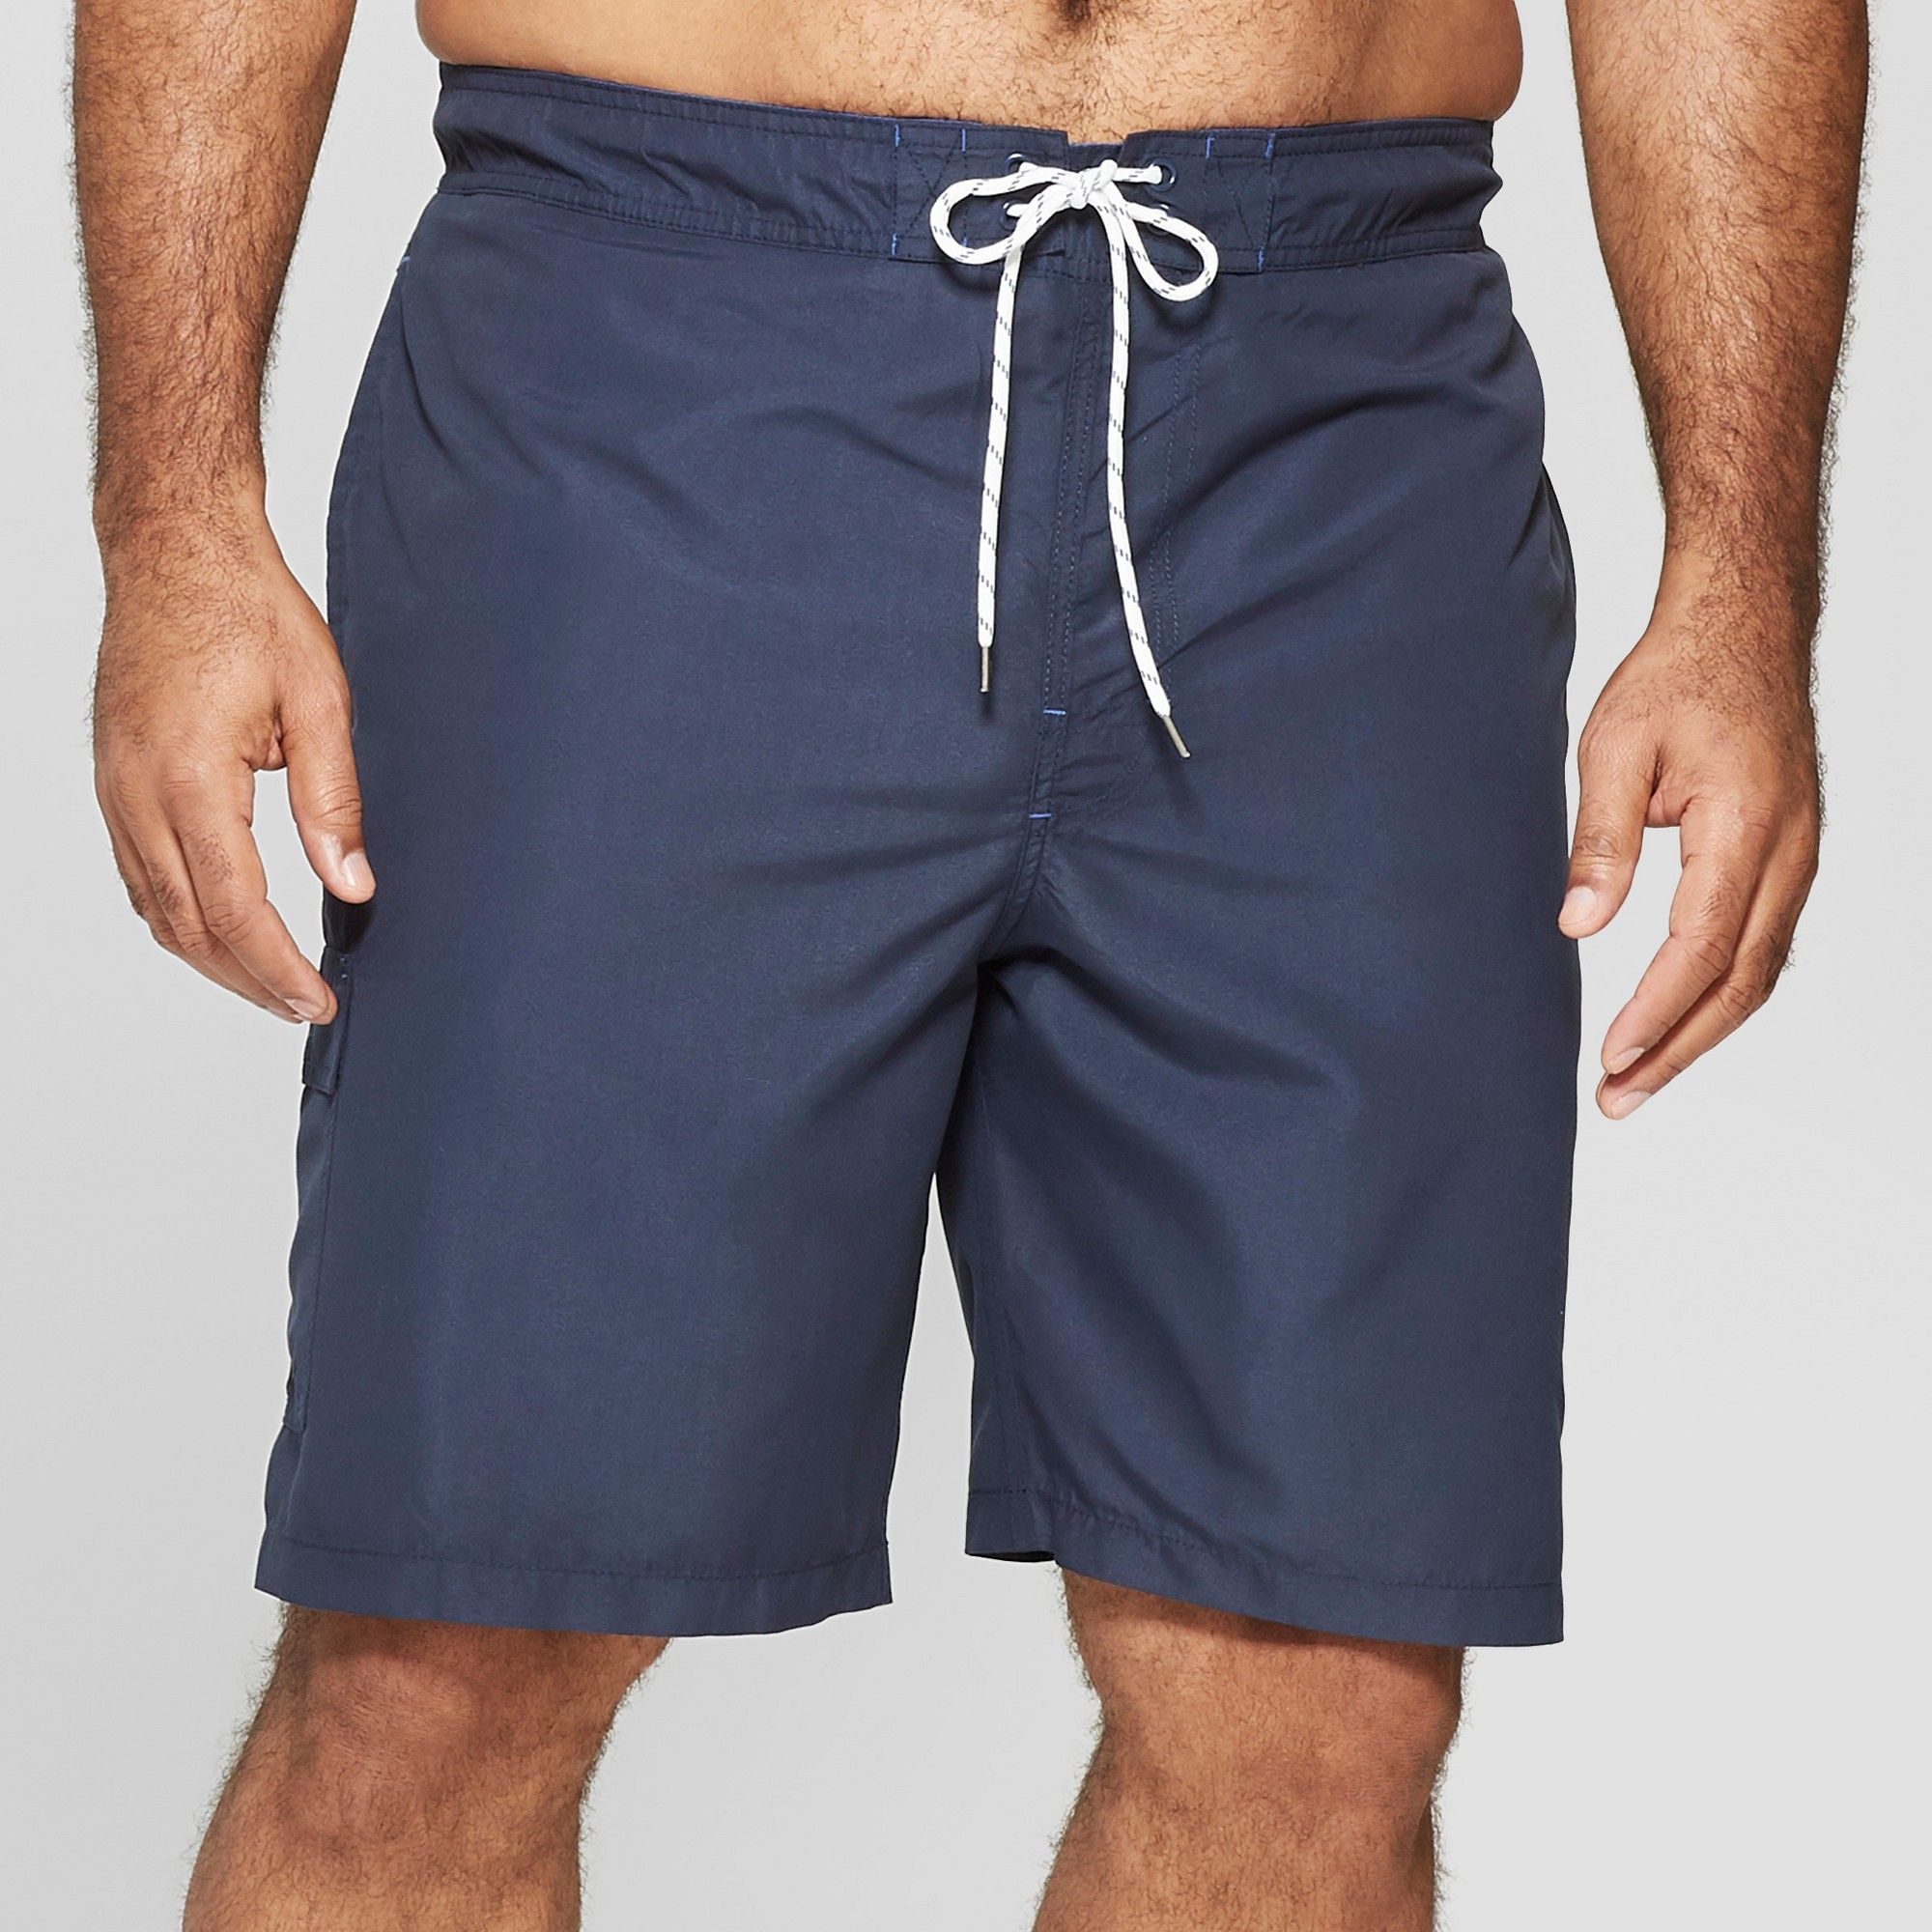 b9ed37a904 Add a touch of classic style to your swim look with these men's Taped Board  Shorts from Goodfellow and Co. Featuring a solid-color design w…